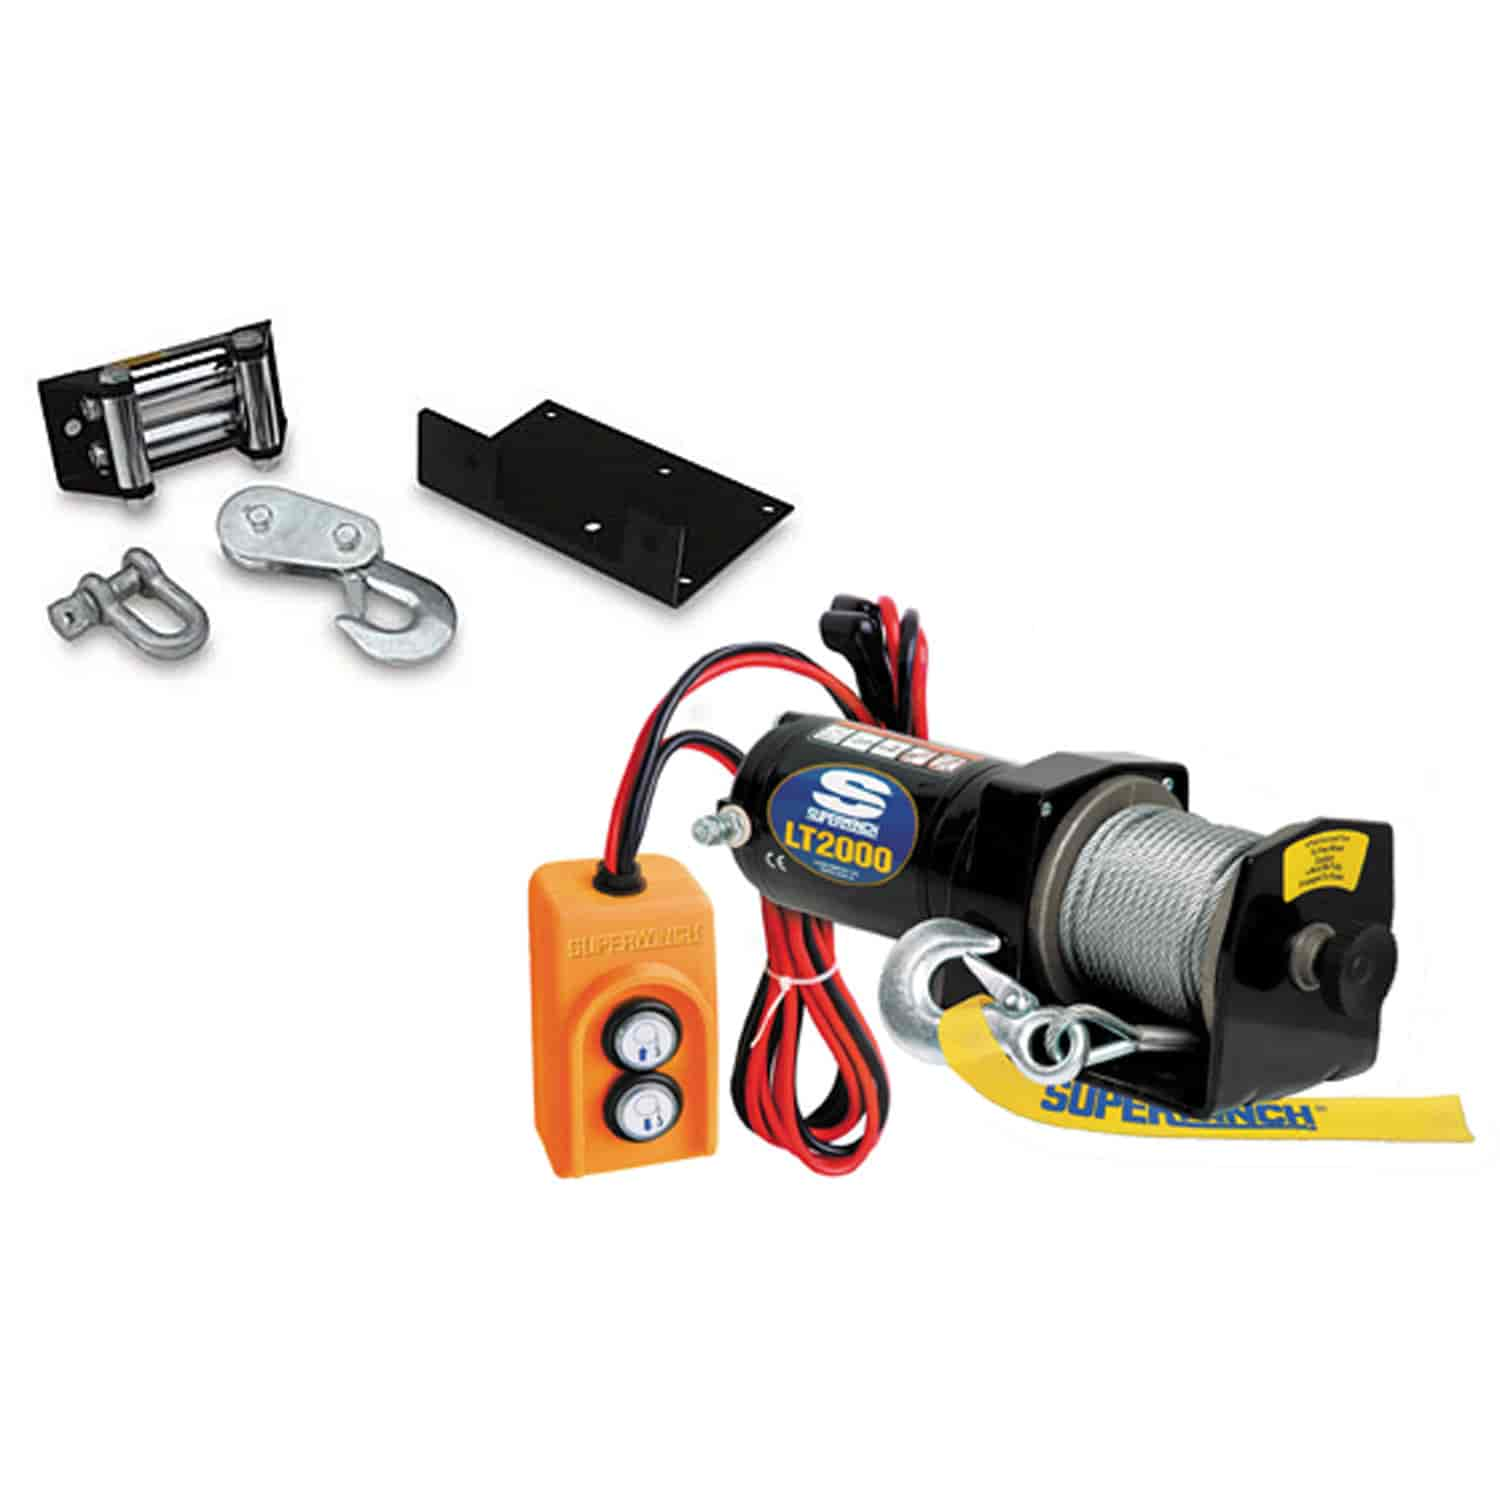 Superwinch 1220210K1